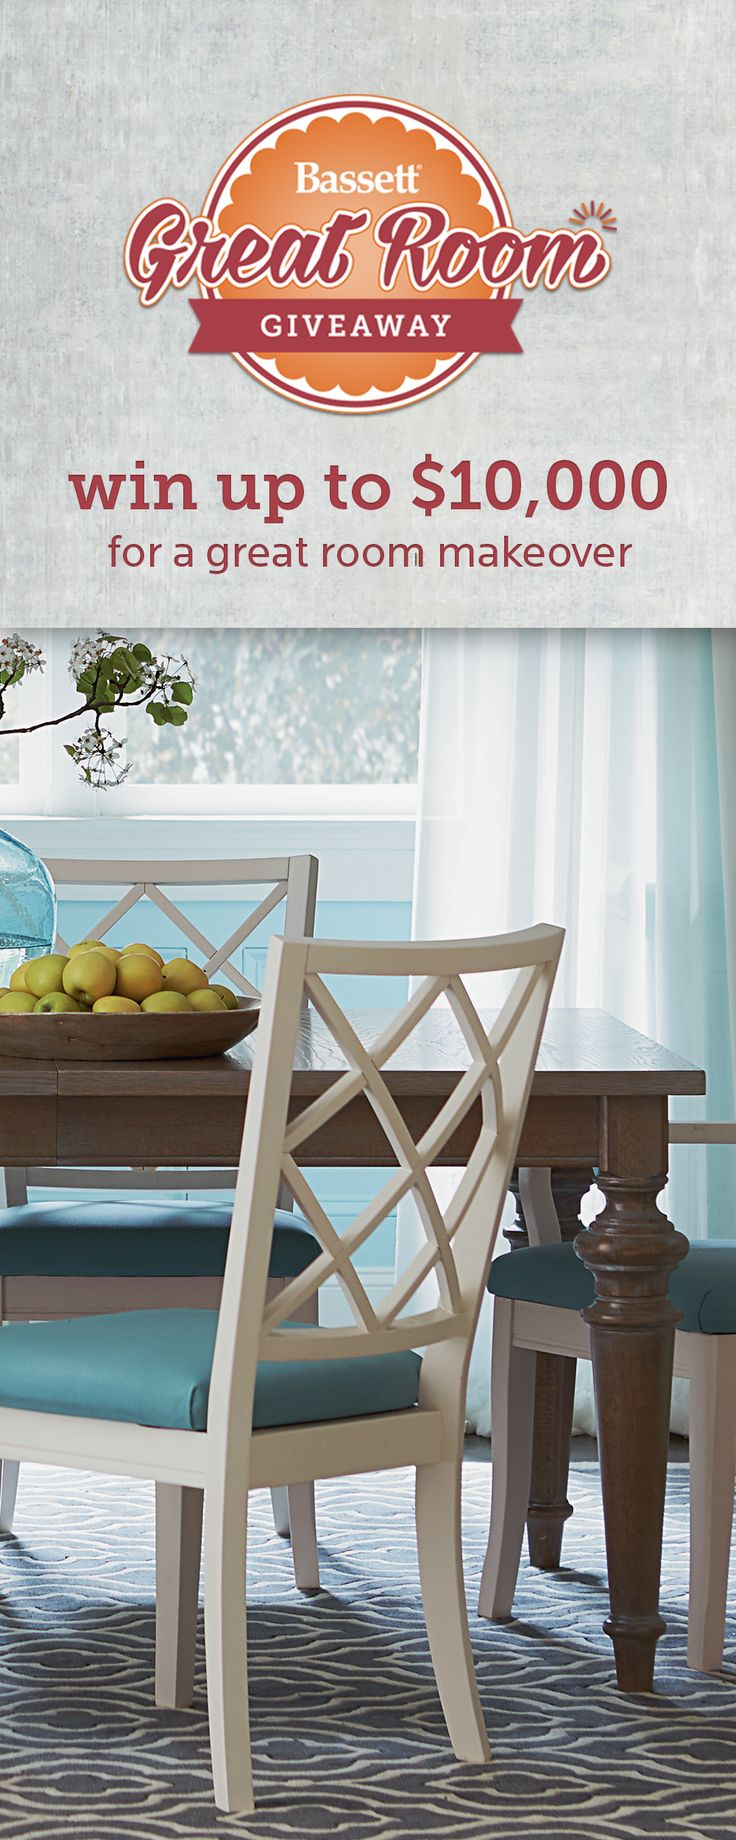 Enter Our Great Room Giveaway Today To Win One Of Three Makeovers NO PURCHASE NECESSARY Ends 11 13 16 Subject Entry Periods As Defined In The